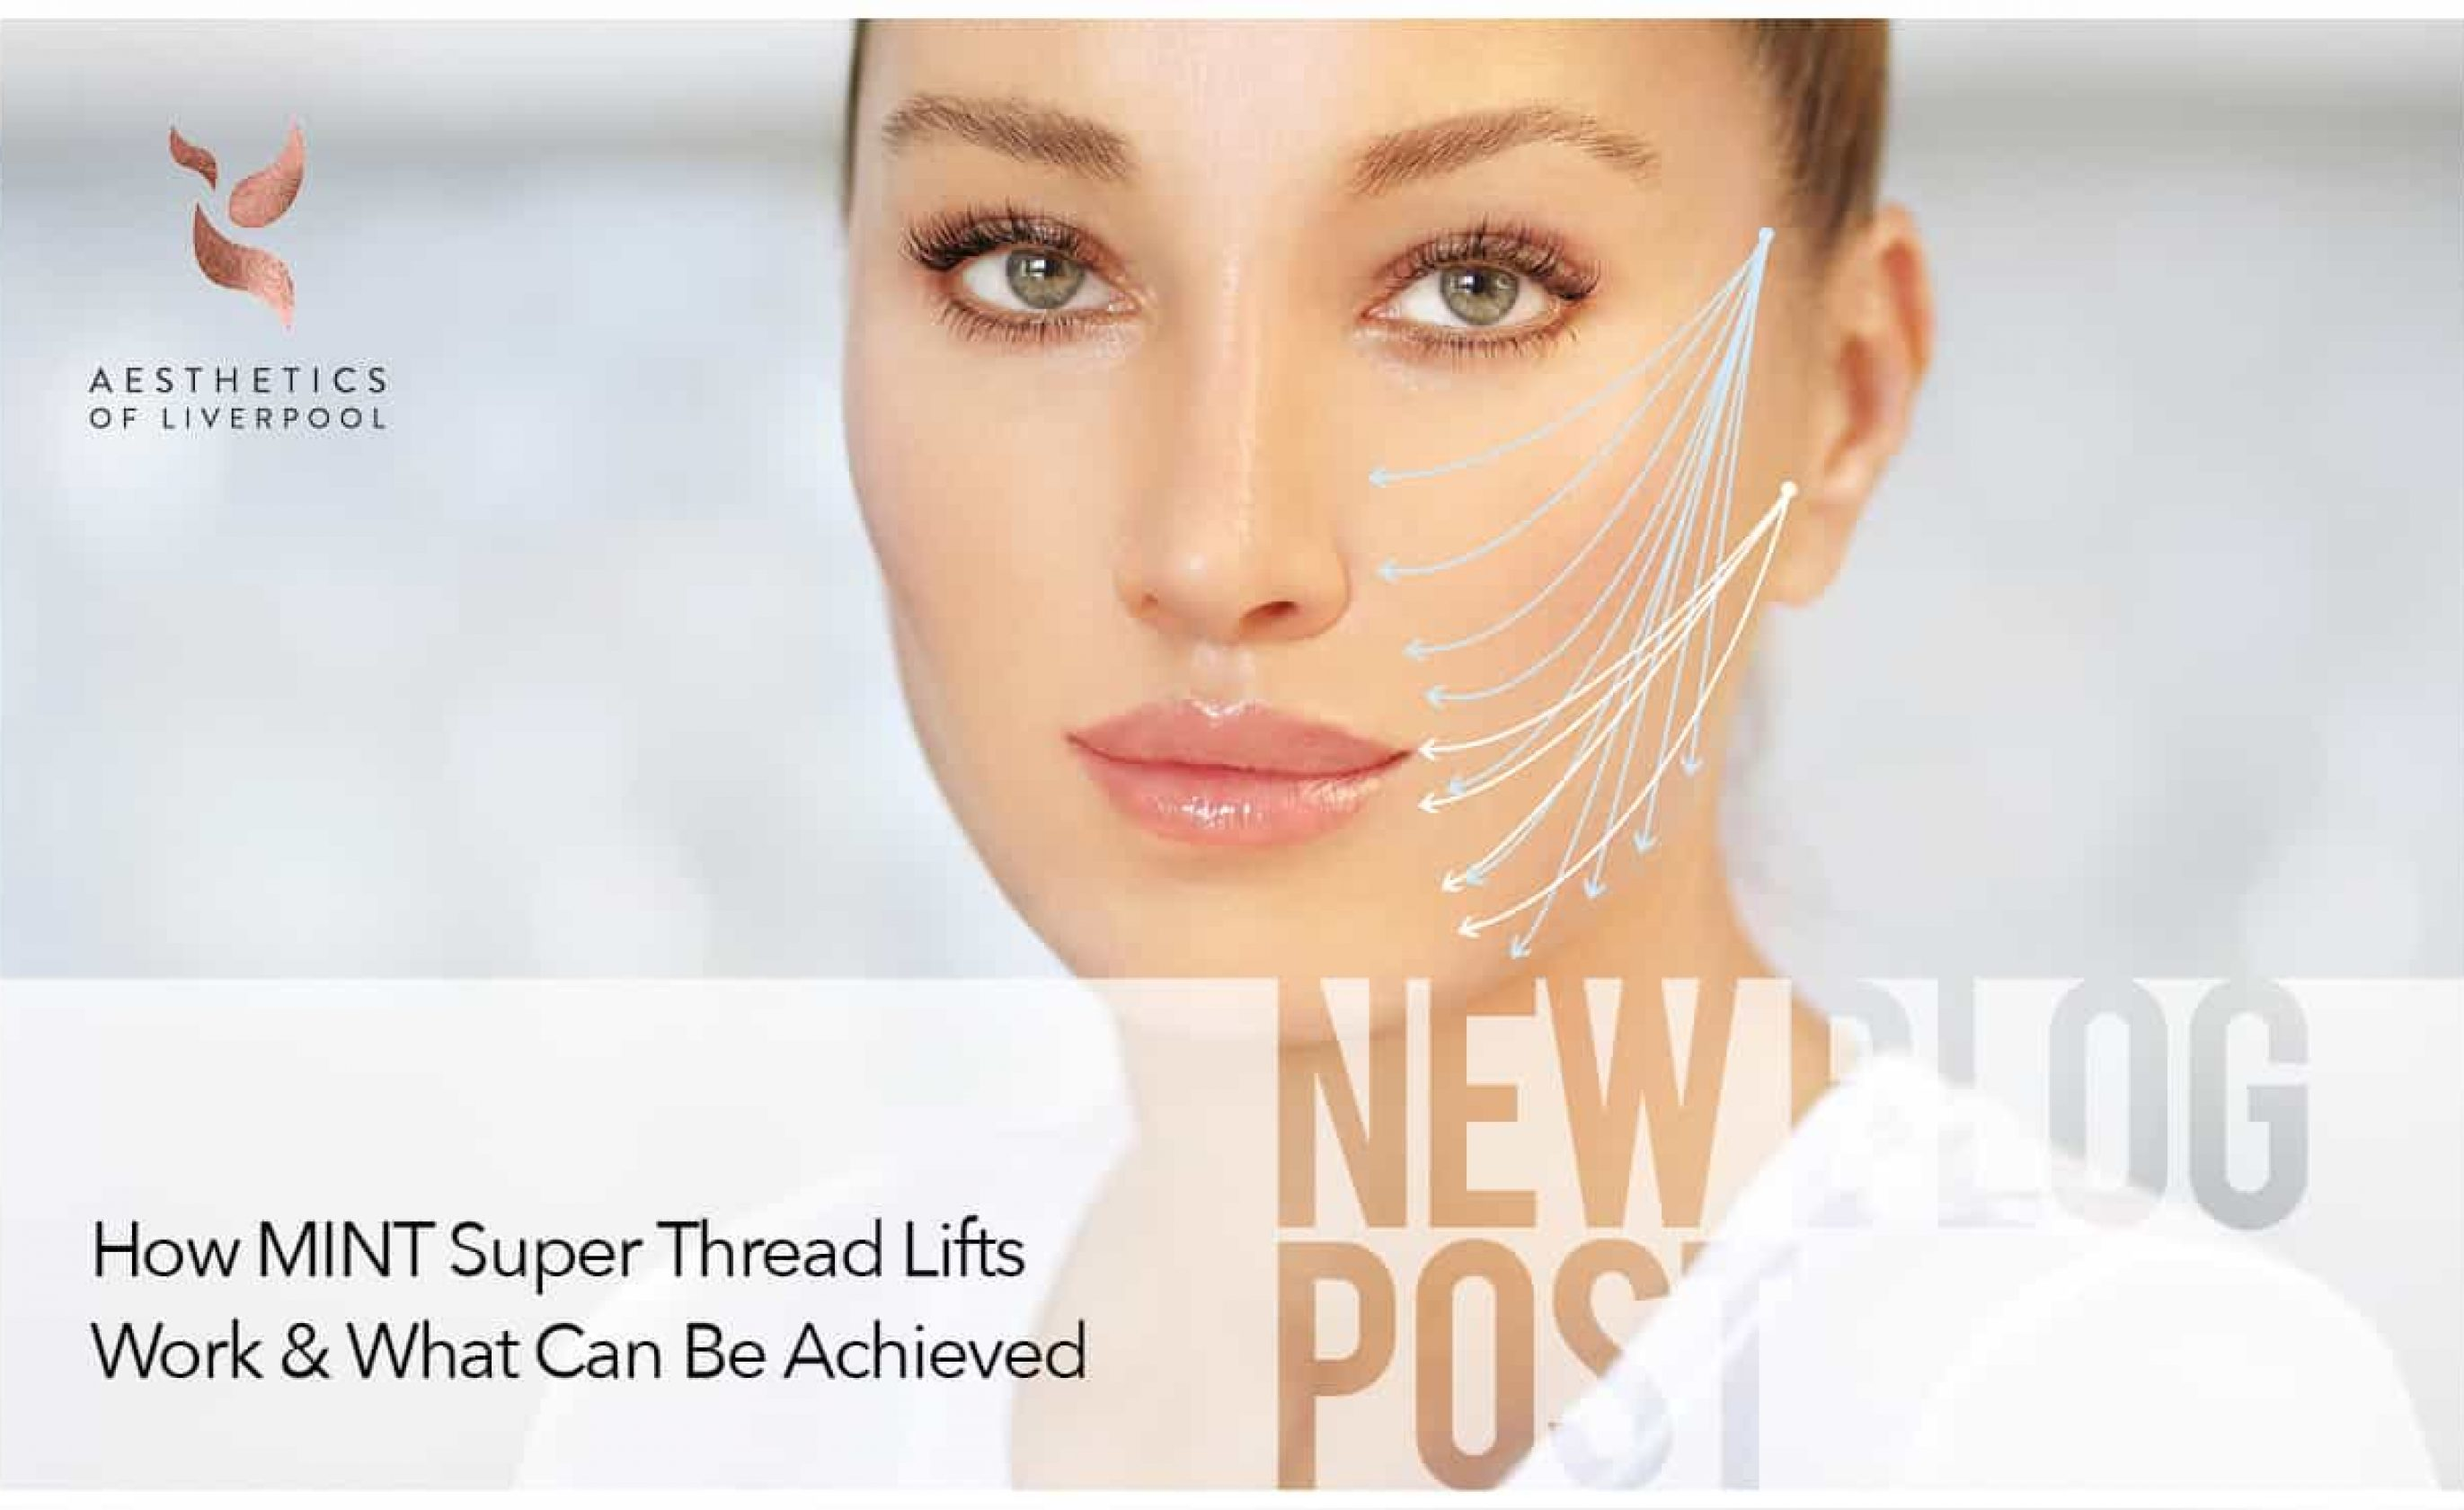 How MINT Super Thread Lifts Work & What Can Be Achieved